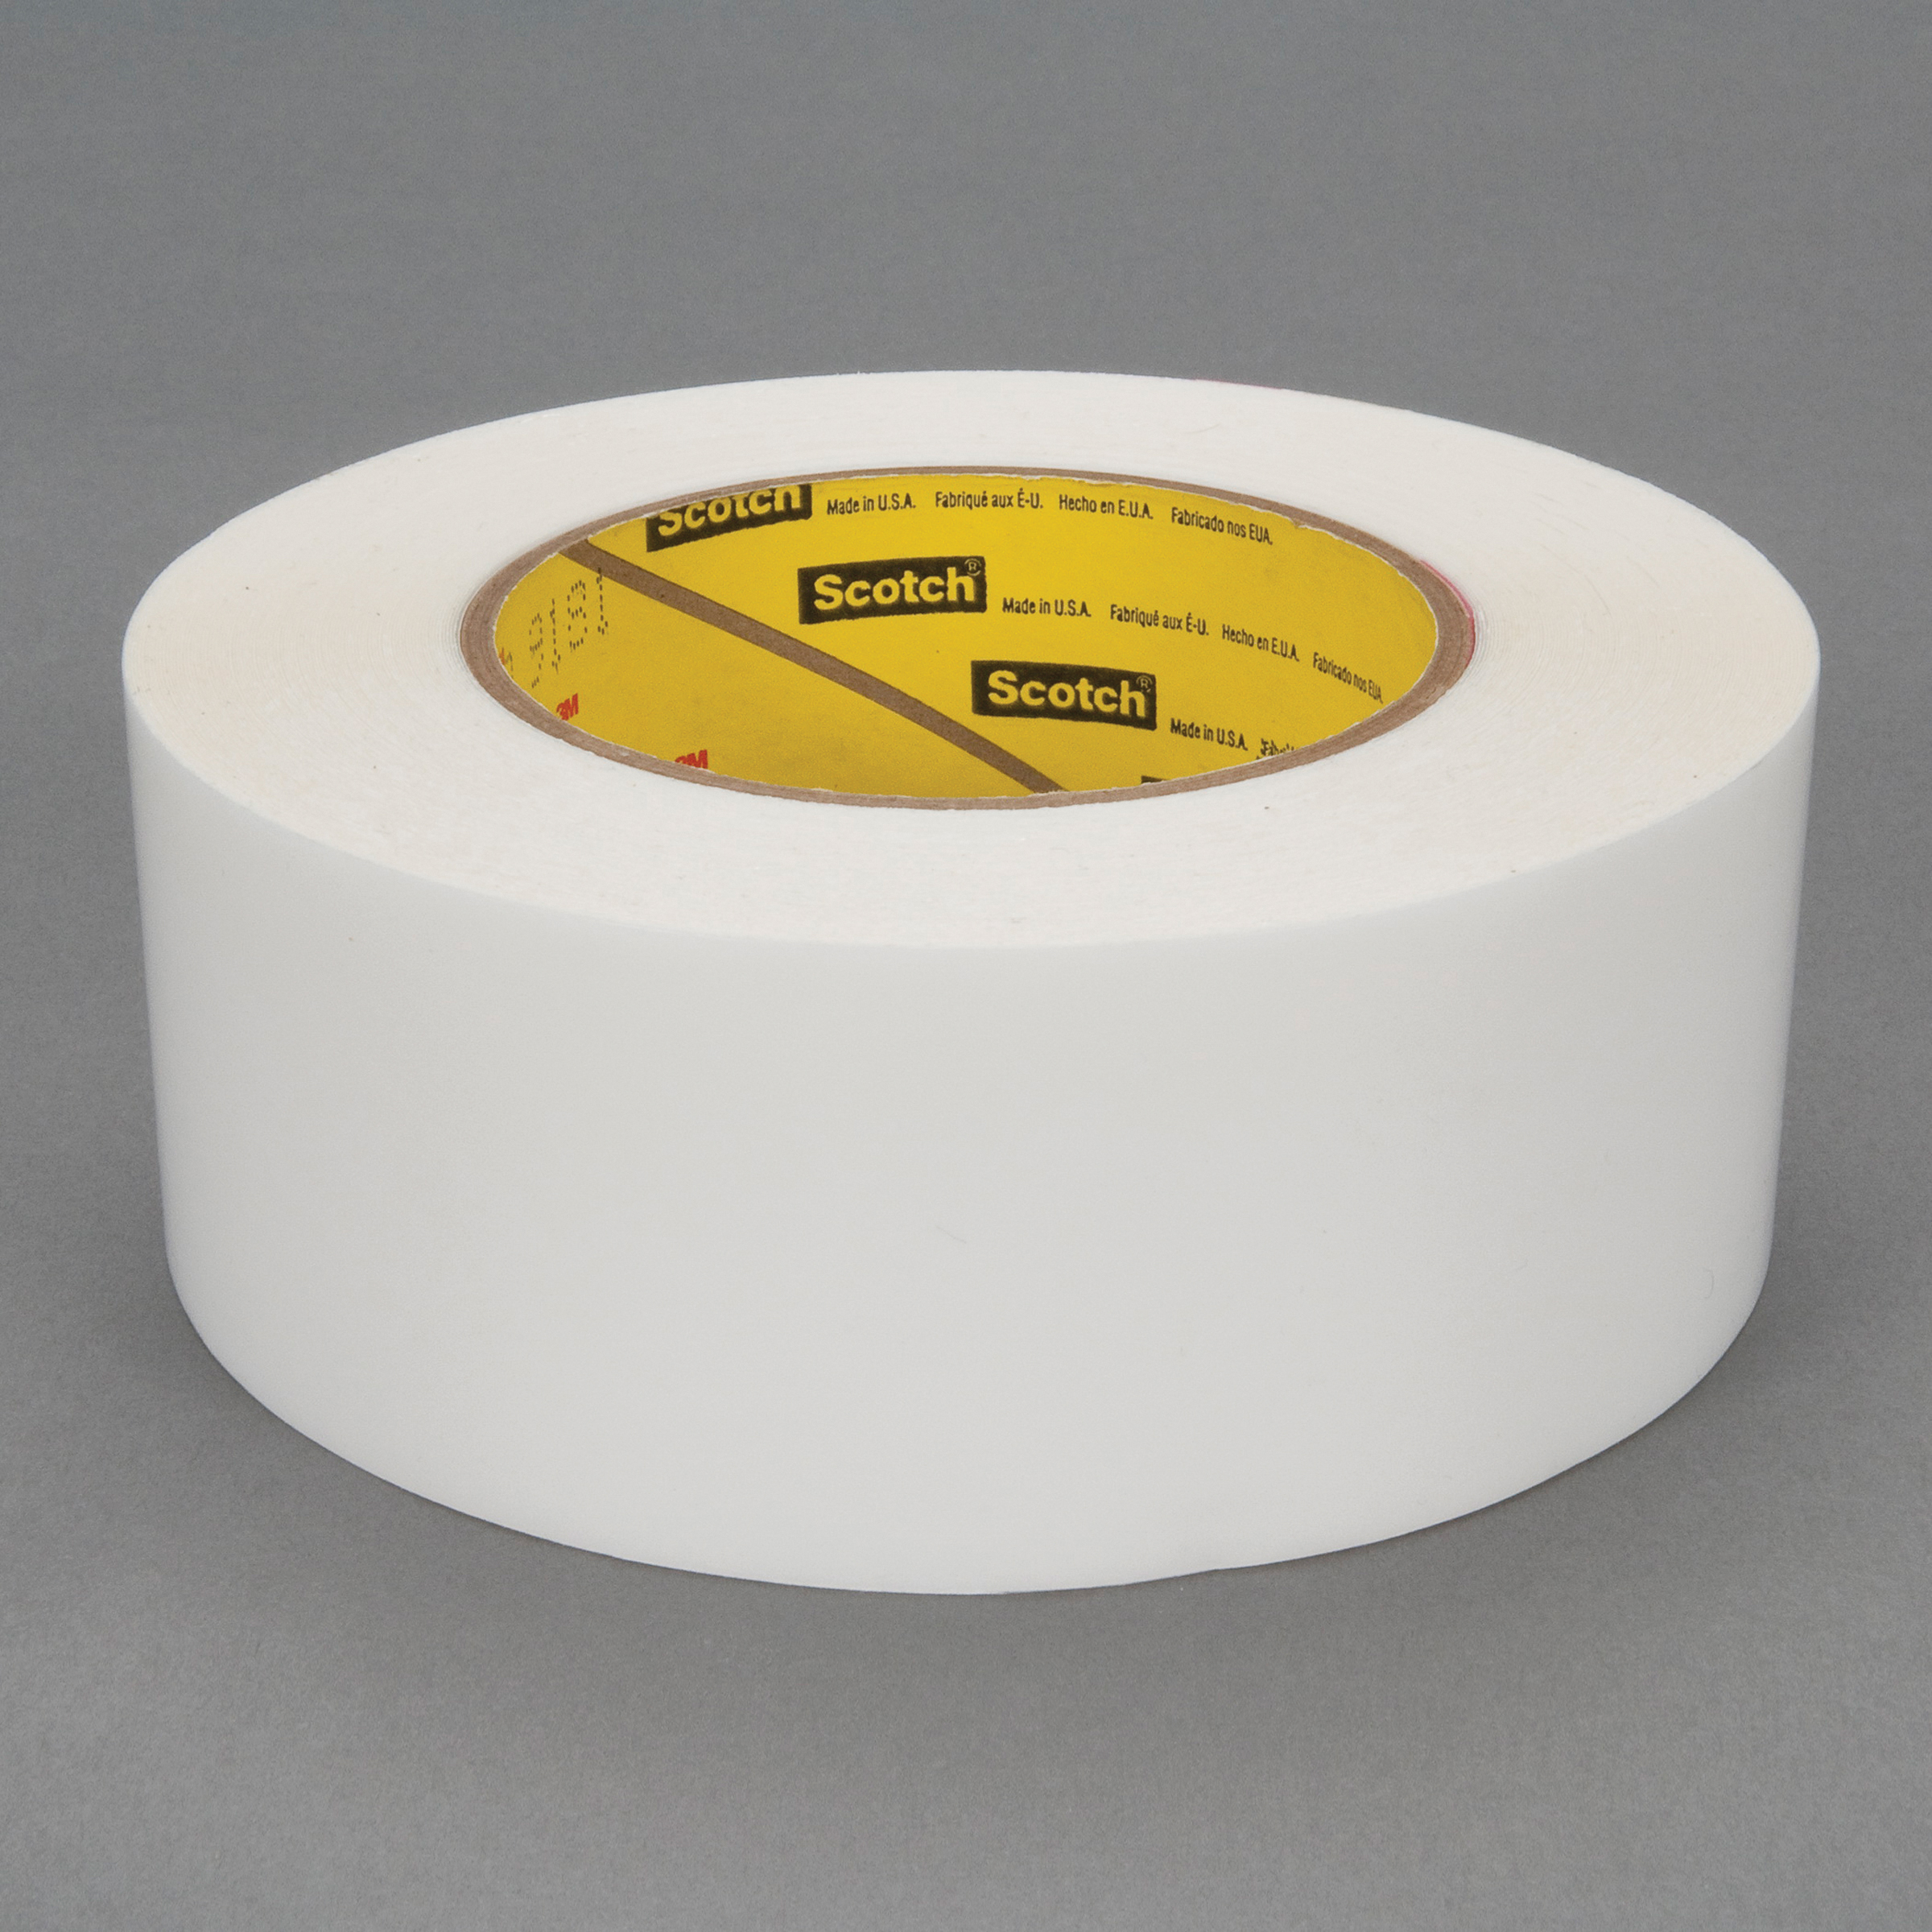 3M™ 021200-26625 High Tack Squeak Reduction Tape, 72 yd L x 2 in W, 7 mil THK, Acrylic Adhesive, UHMW Polyethylene Film Backing, Transparent